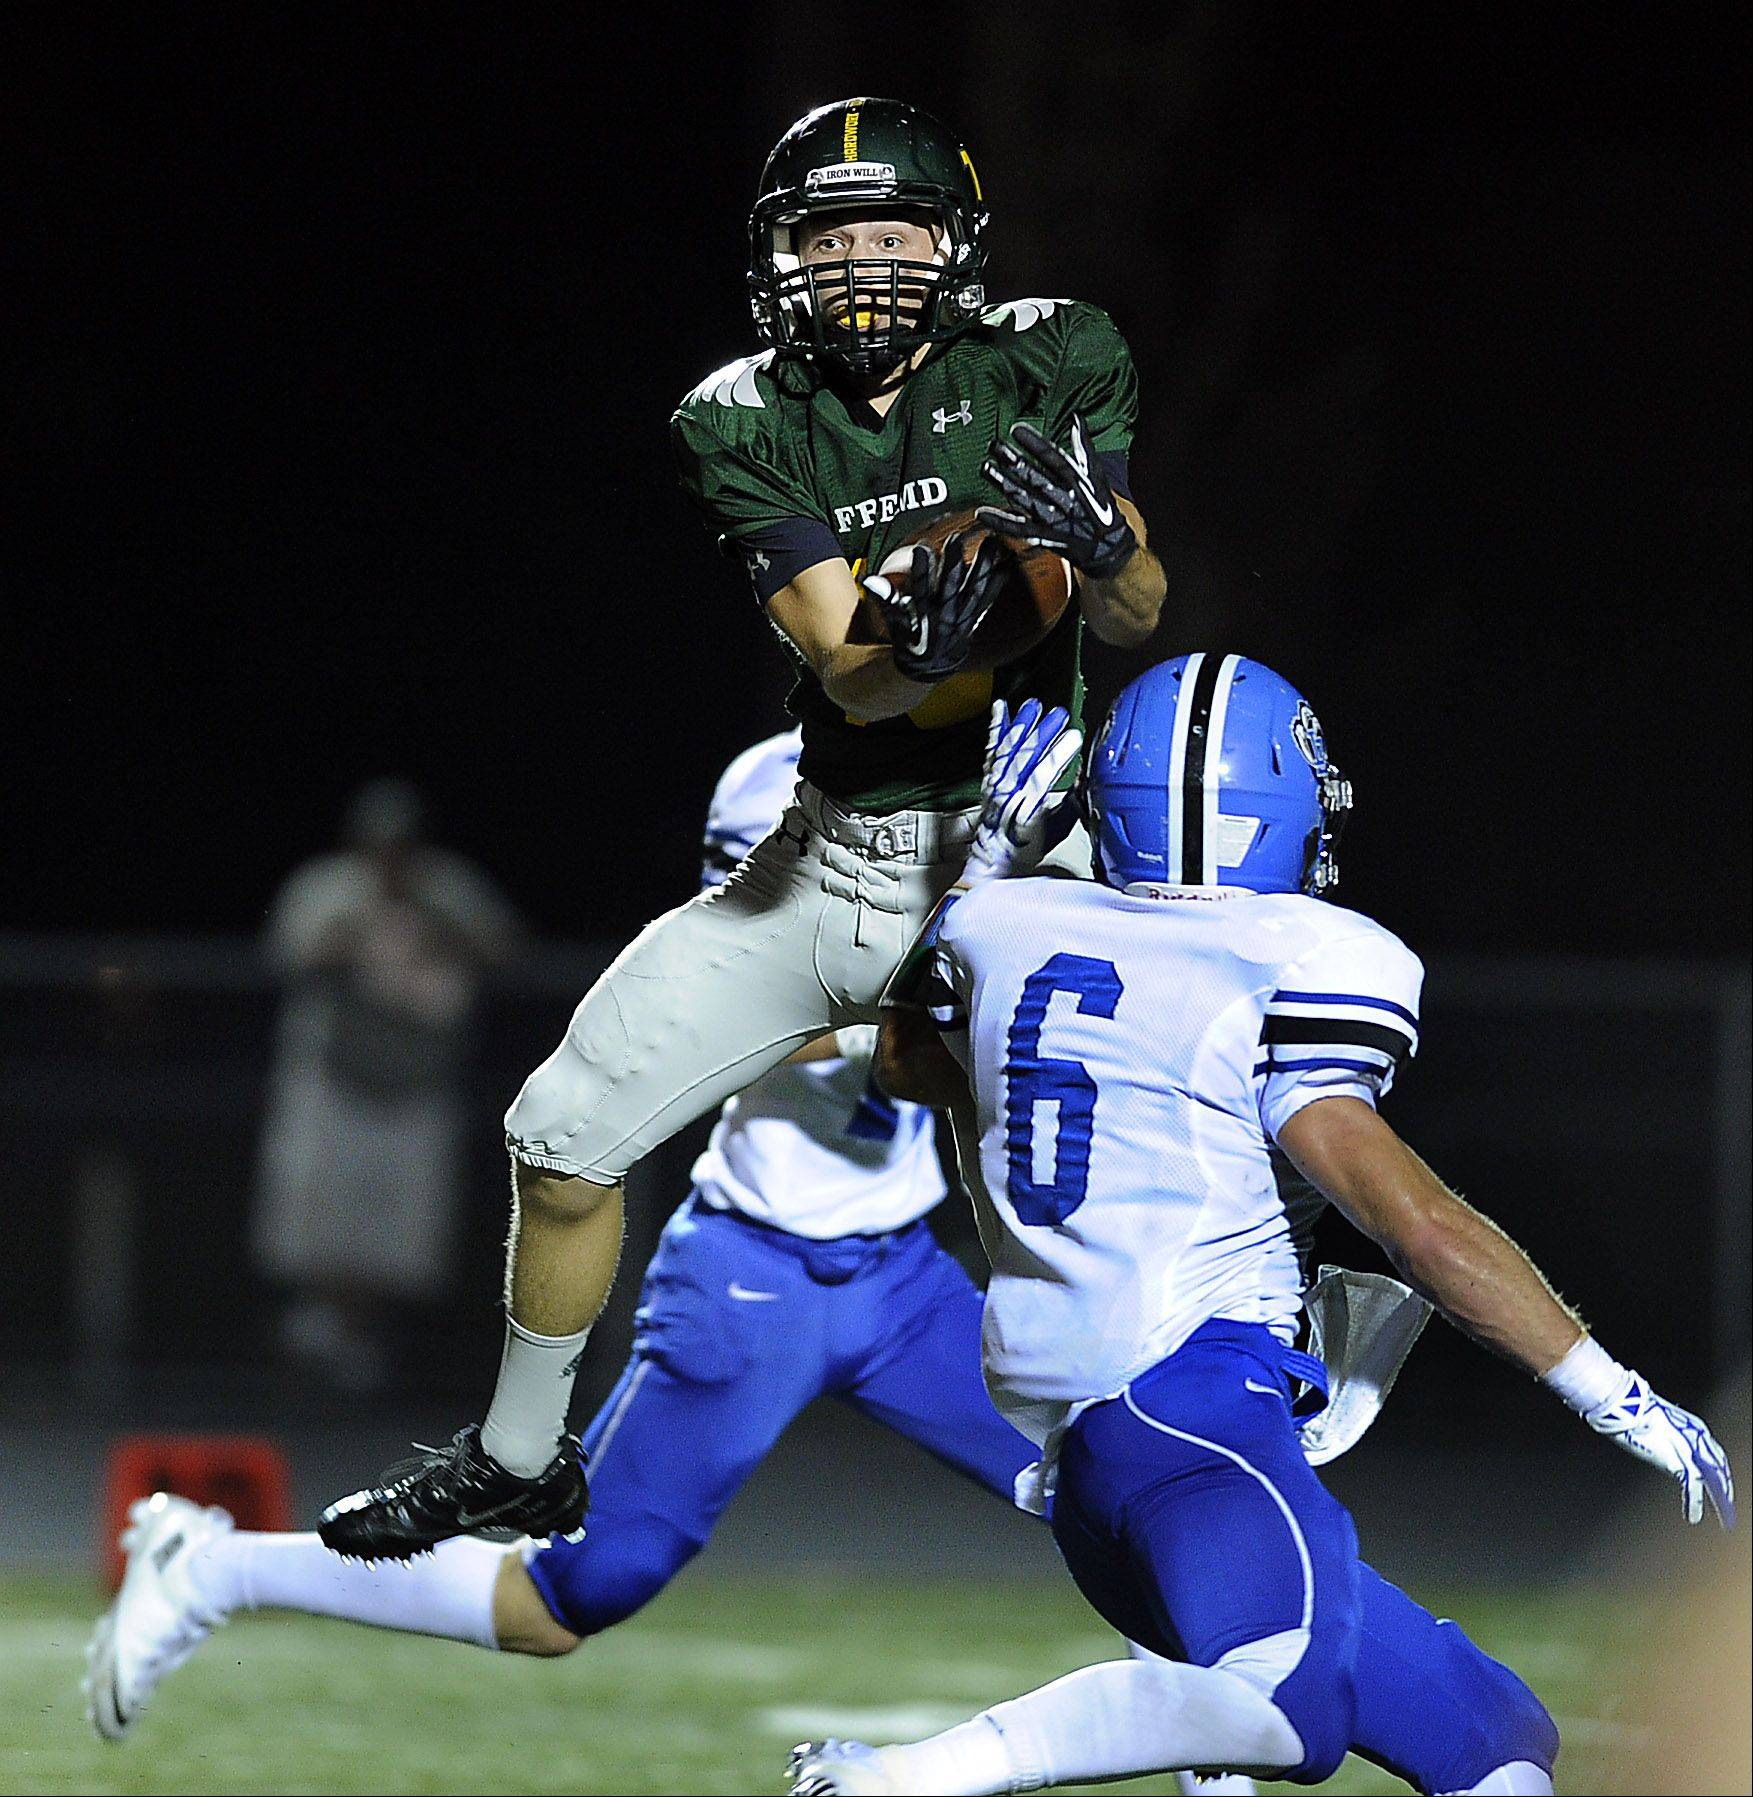 Fremd's Anthony Halvorsen hauls in a pass play in the first quarter last weekend as Lake Zurich's Sean Lynch attempts to stop him. The Vikings were held to 66 yards rushing and 62 passing as LZ won 24-0.